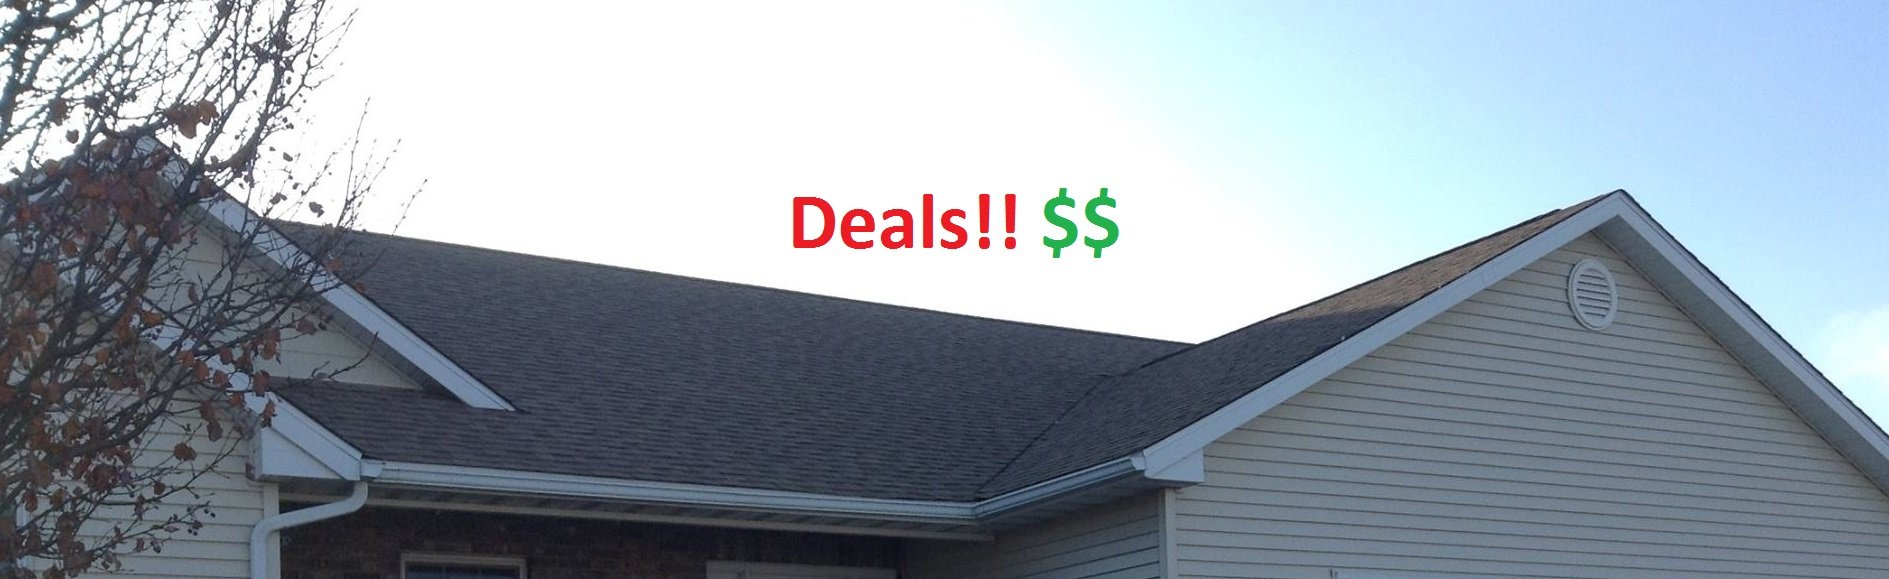 Roofing Deals